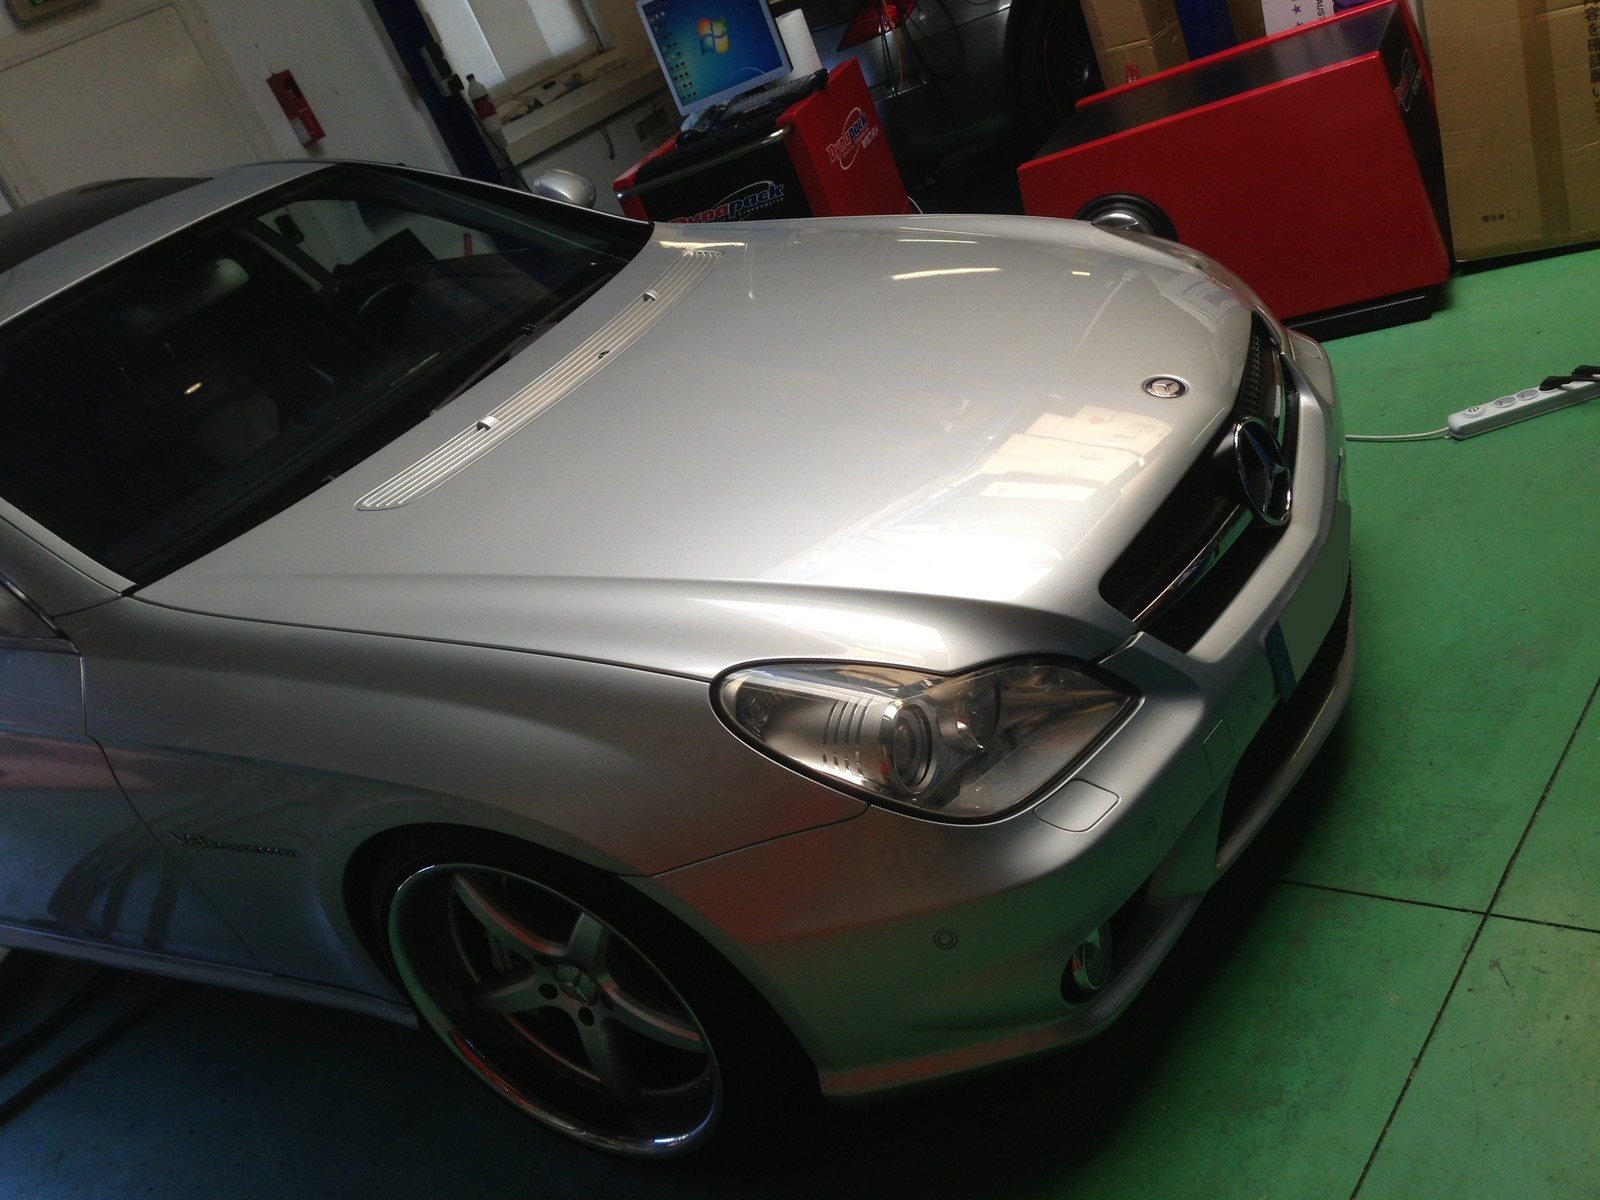 2006 mercedes benz cls55 amg dyno sheet details for 2006 mercedes benz cls55 amg